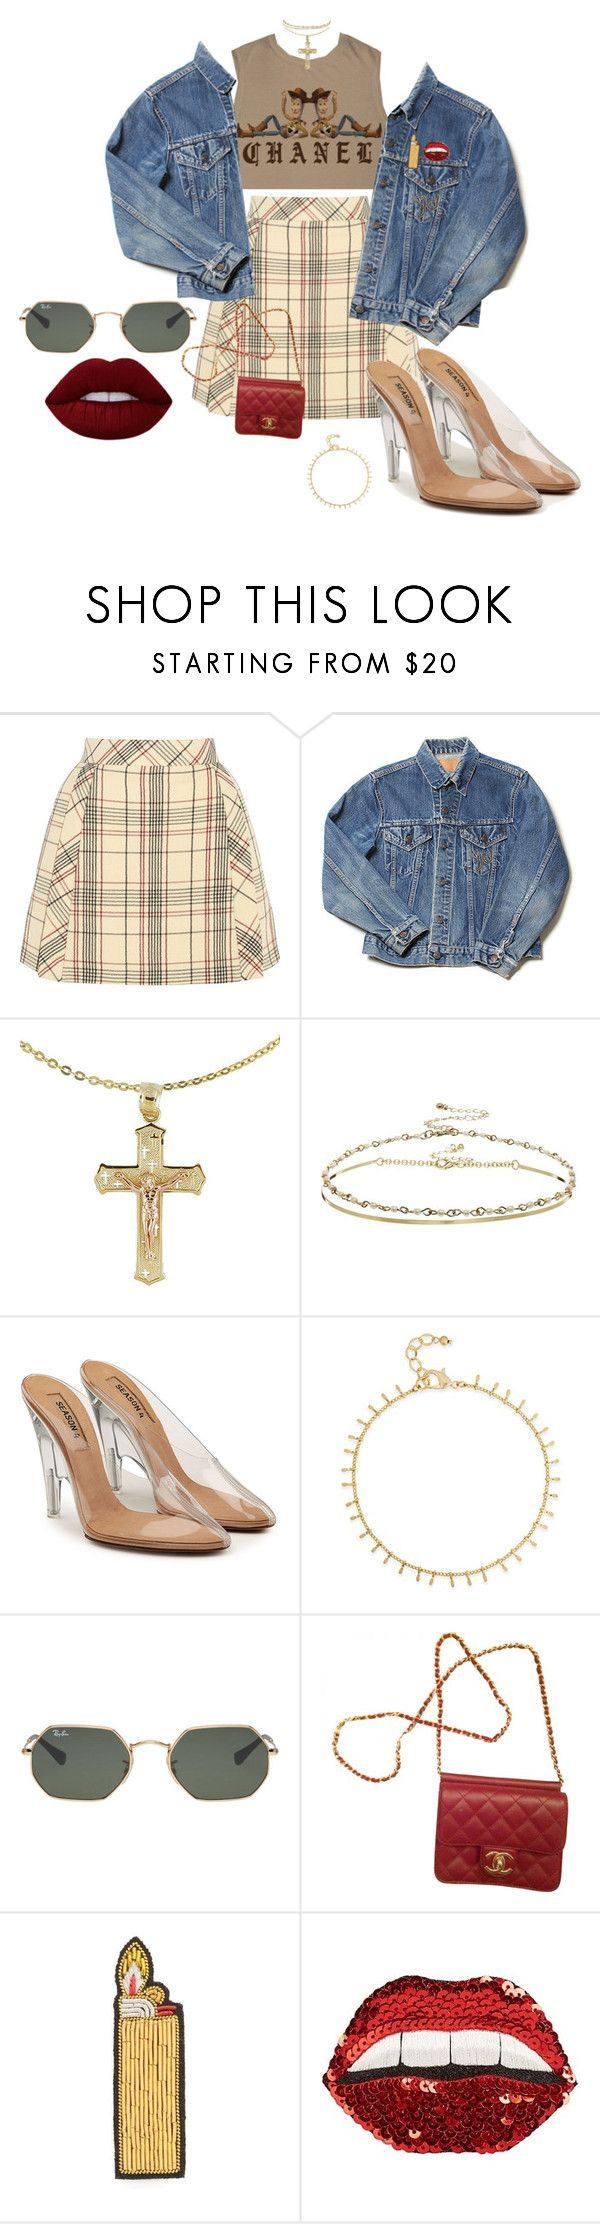 """""""Plaid & Bad"""" by childishglambino ❤ liked on Polyvore featuring Chanel, Delpozo, ASOS, Yeezy by Kanye West, INC International Concepts, Ray-Ban, Macon & Lesquoy, Happy Embellishments and Lime Crime"""